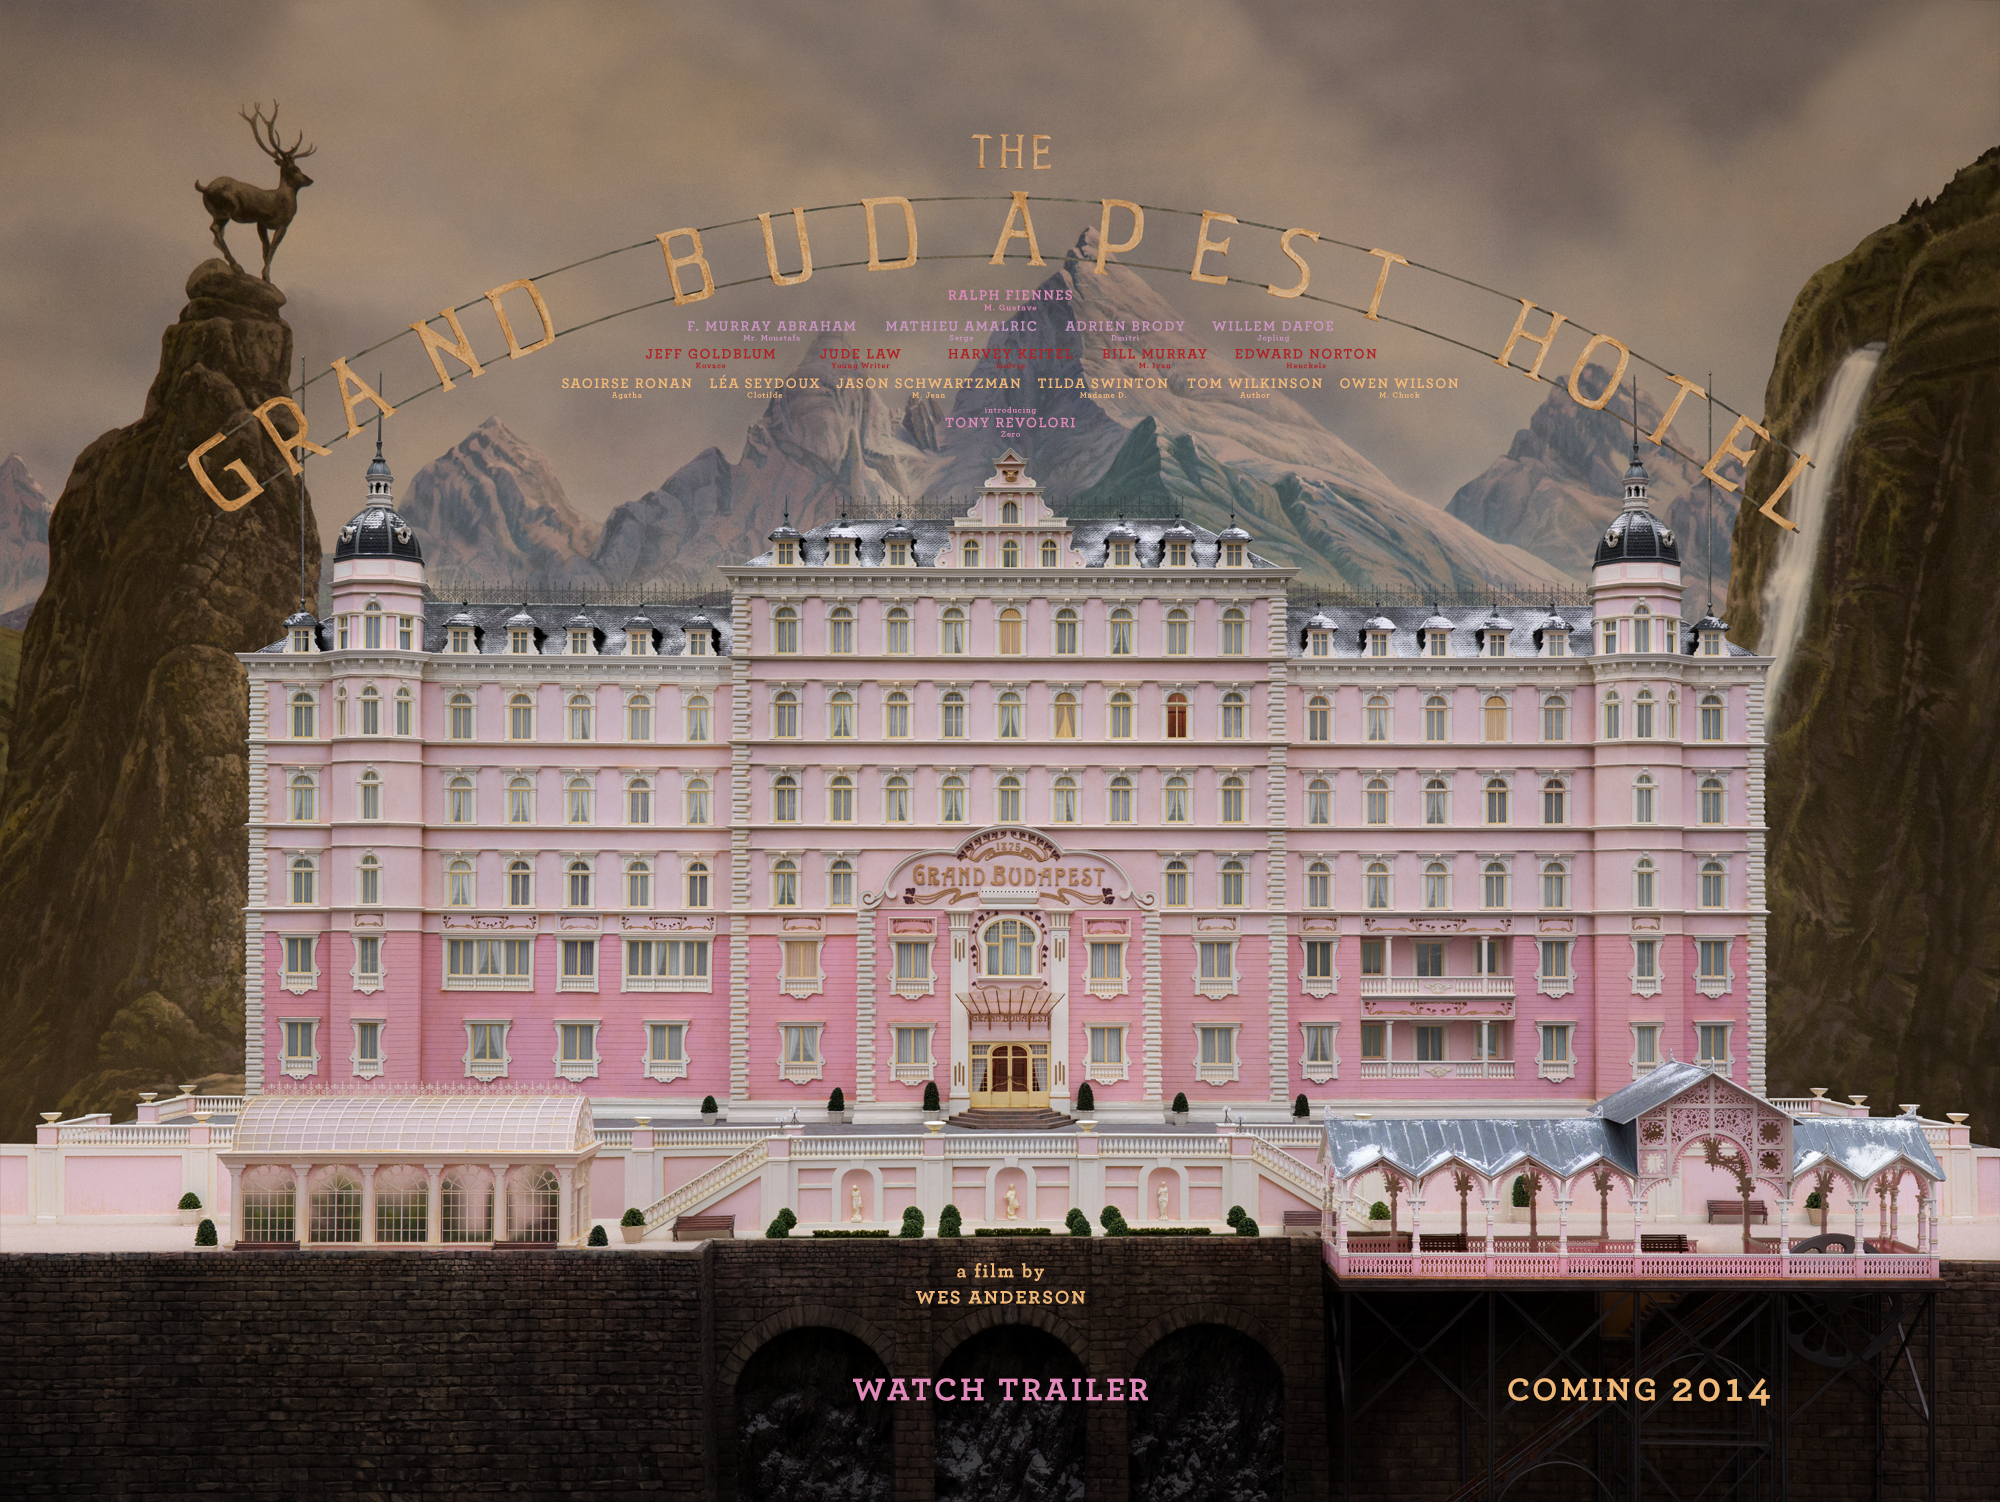 NEW TRAILER: The Grand Budapest Hotel